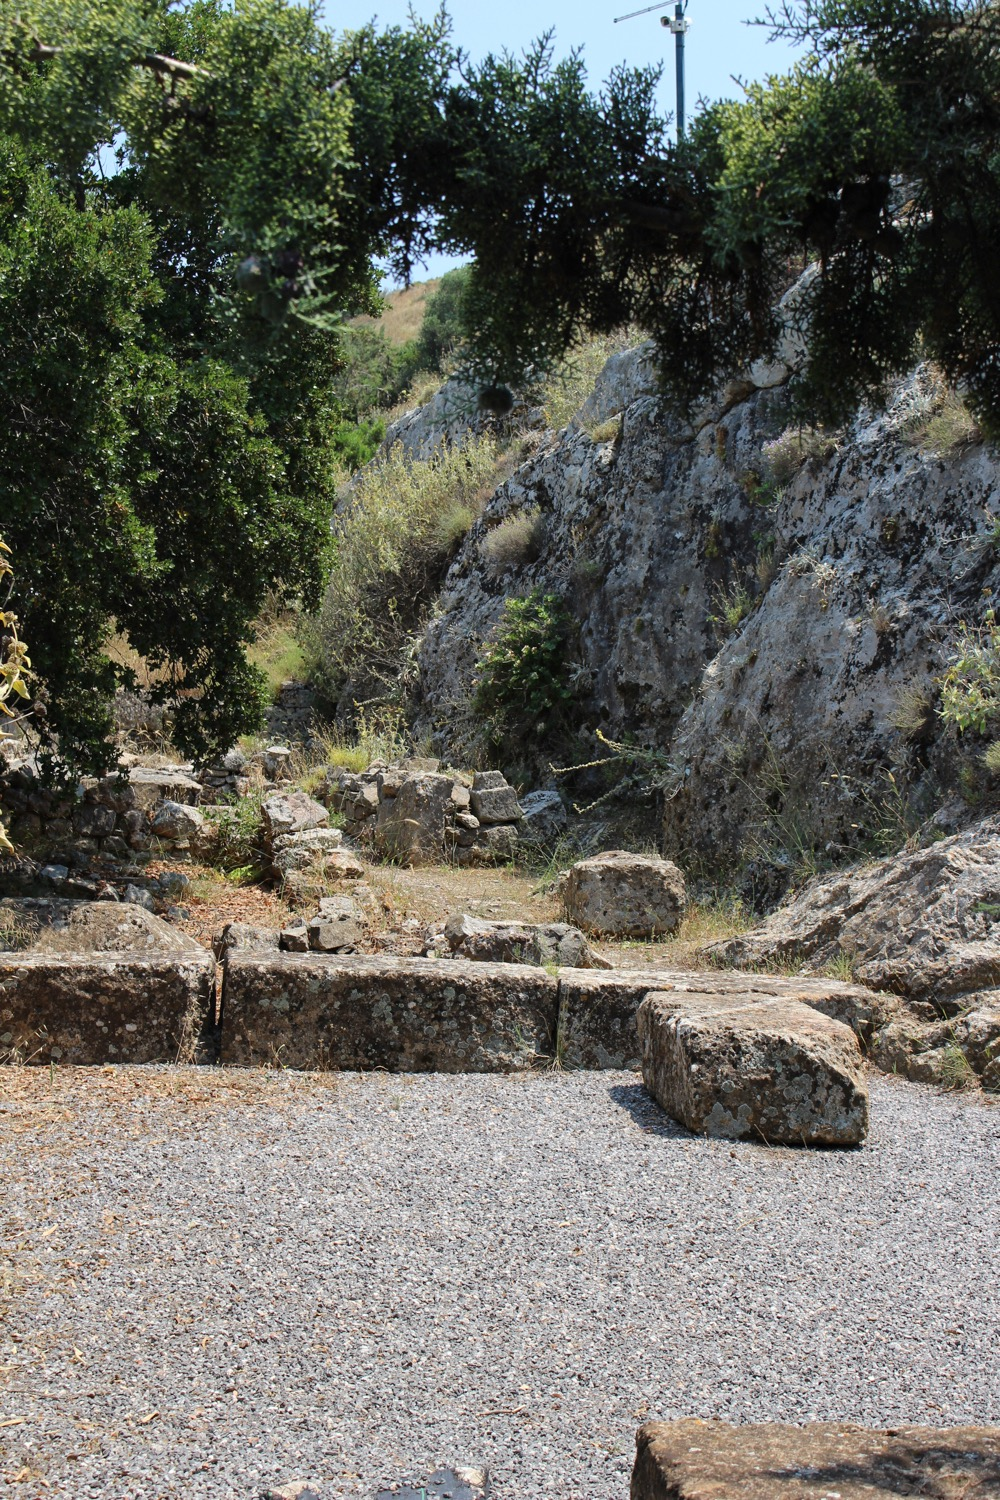 The assumed remains of Iphigeneia's tomb